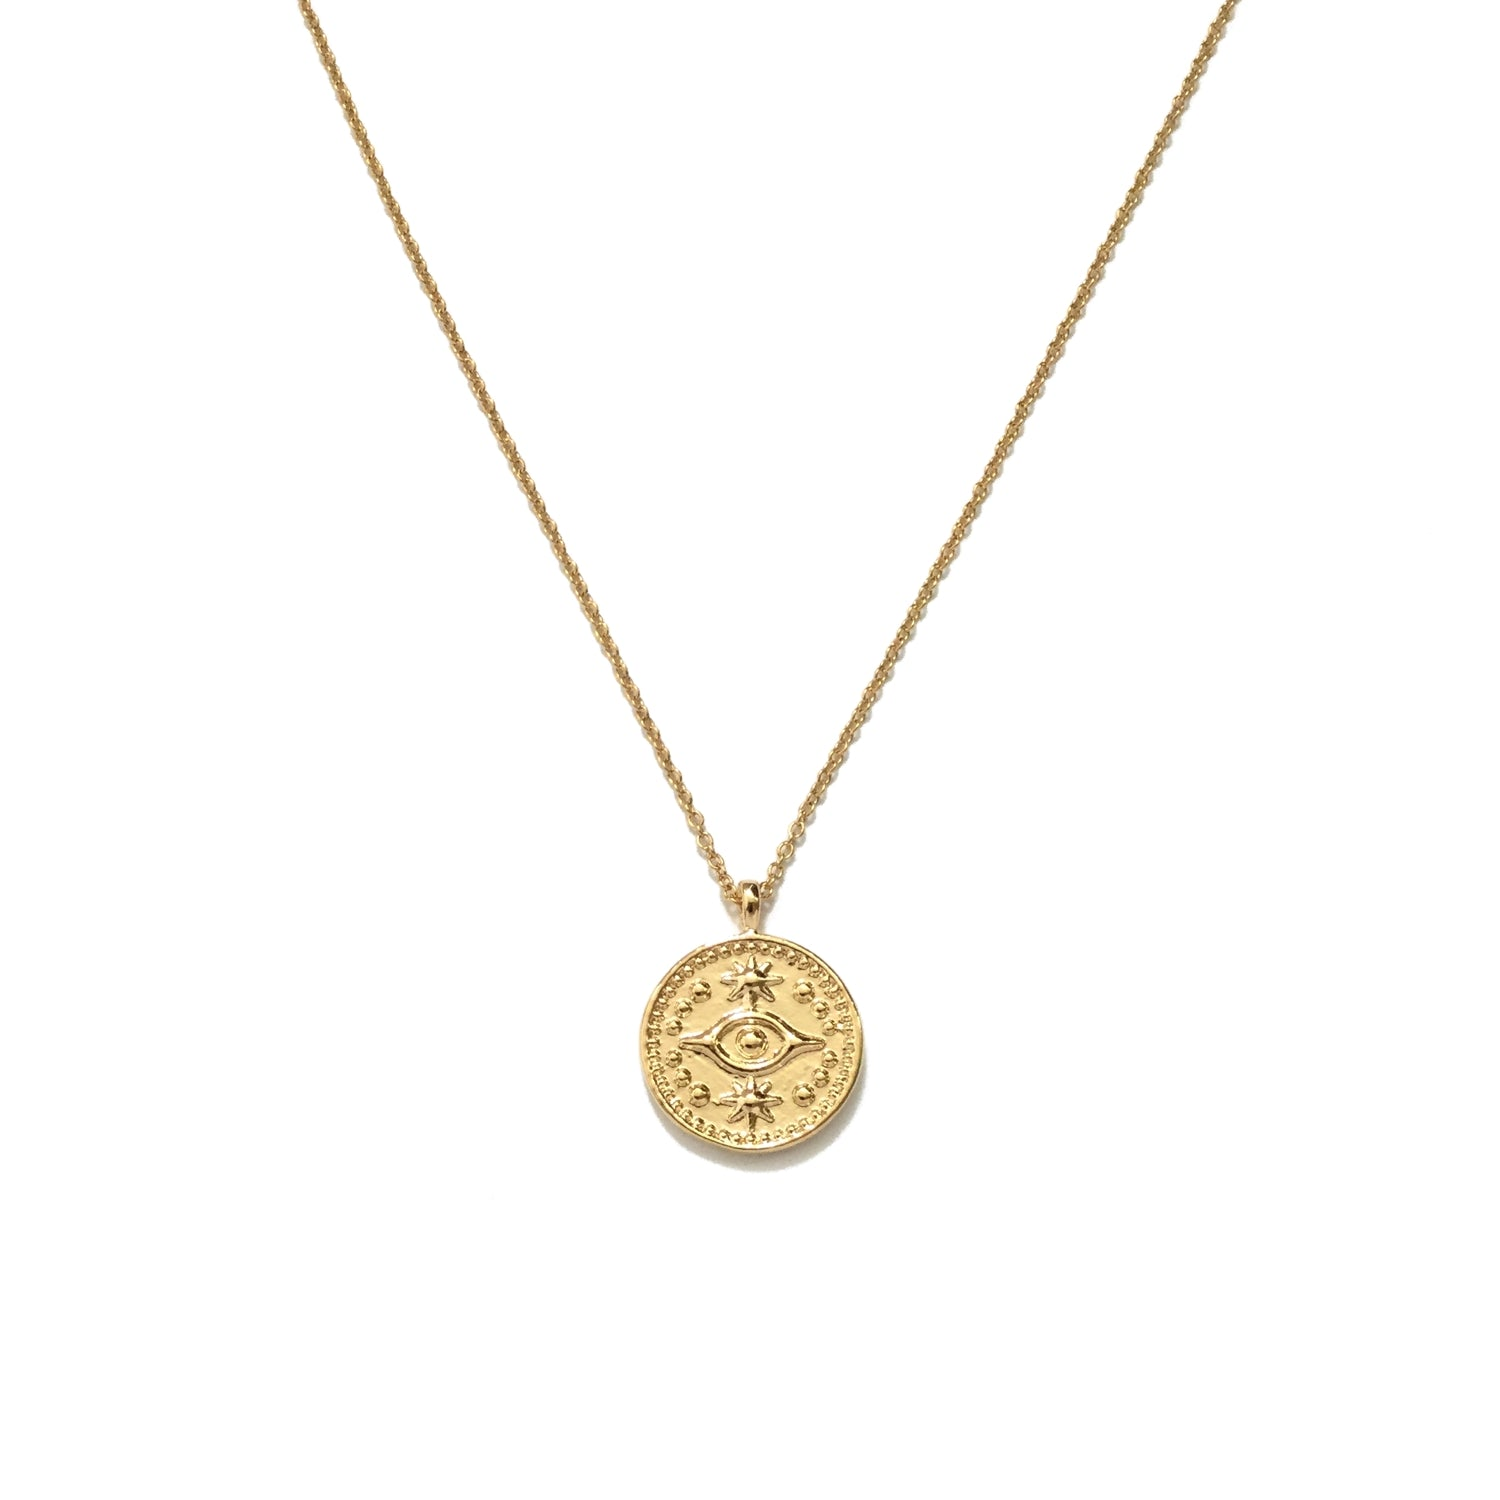 Gold plated evil eye coin pendant necklace